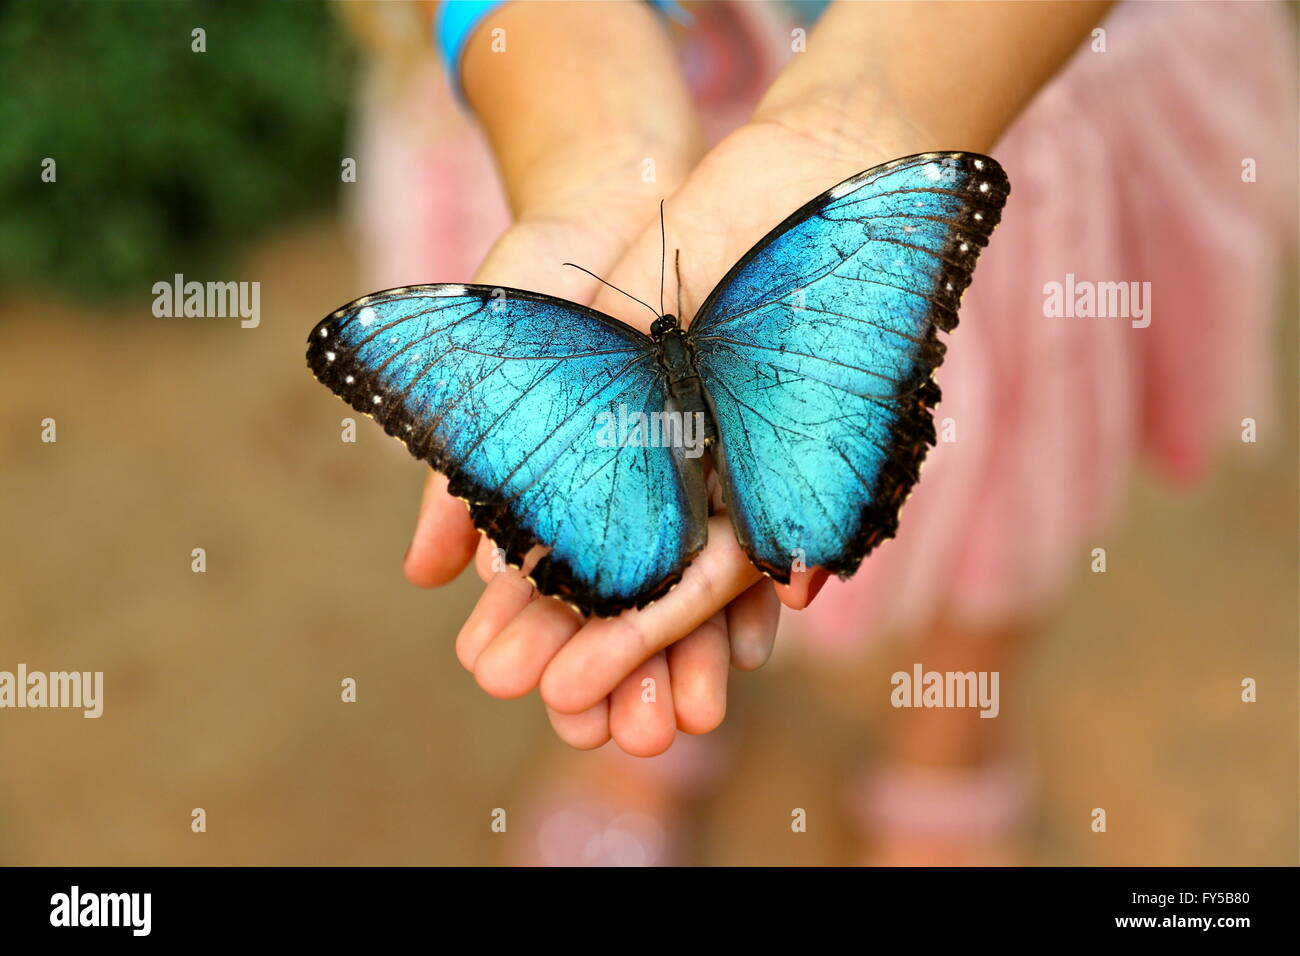 Uncategorized Butterfly Hand butterfly in hands stock photos images blue morpho girls image